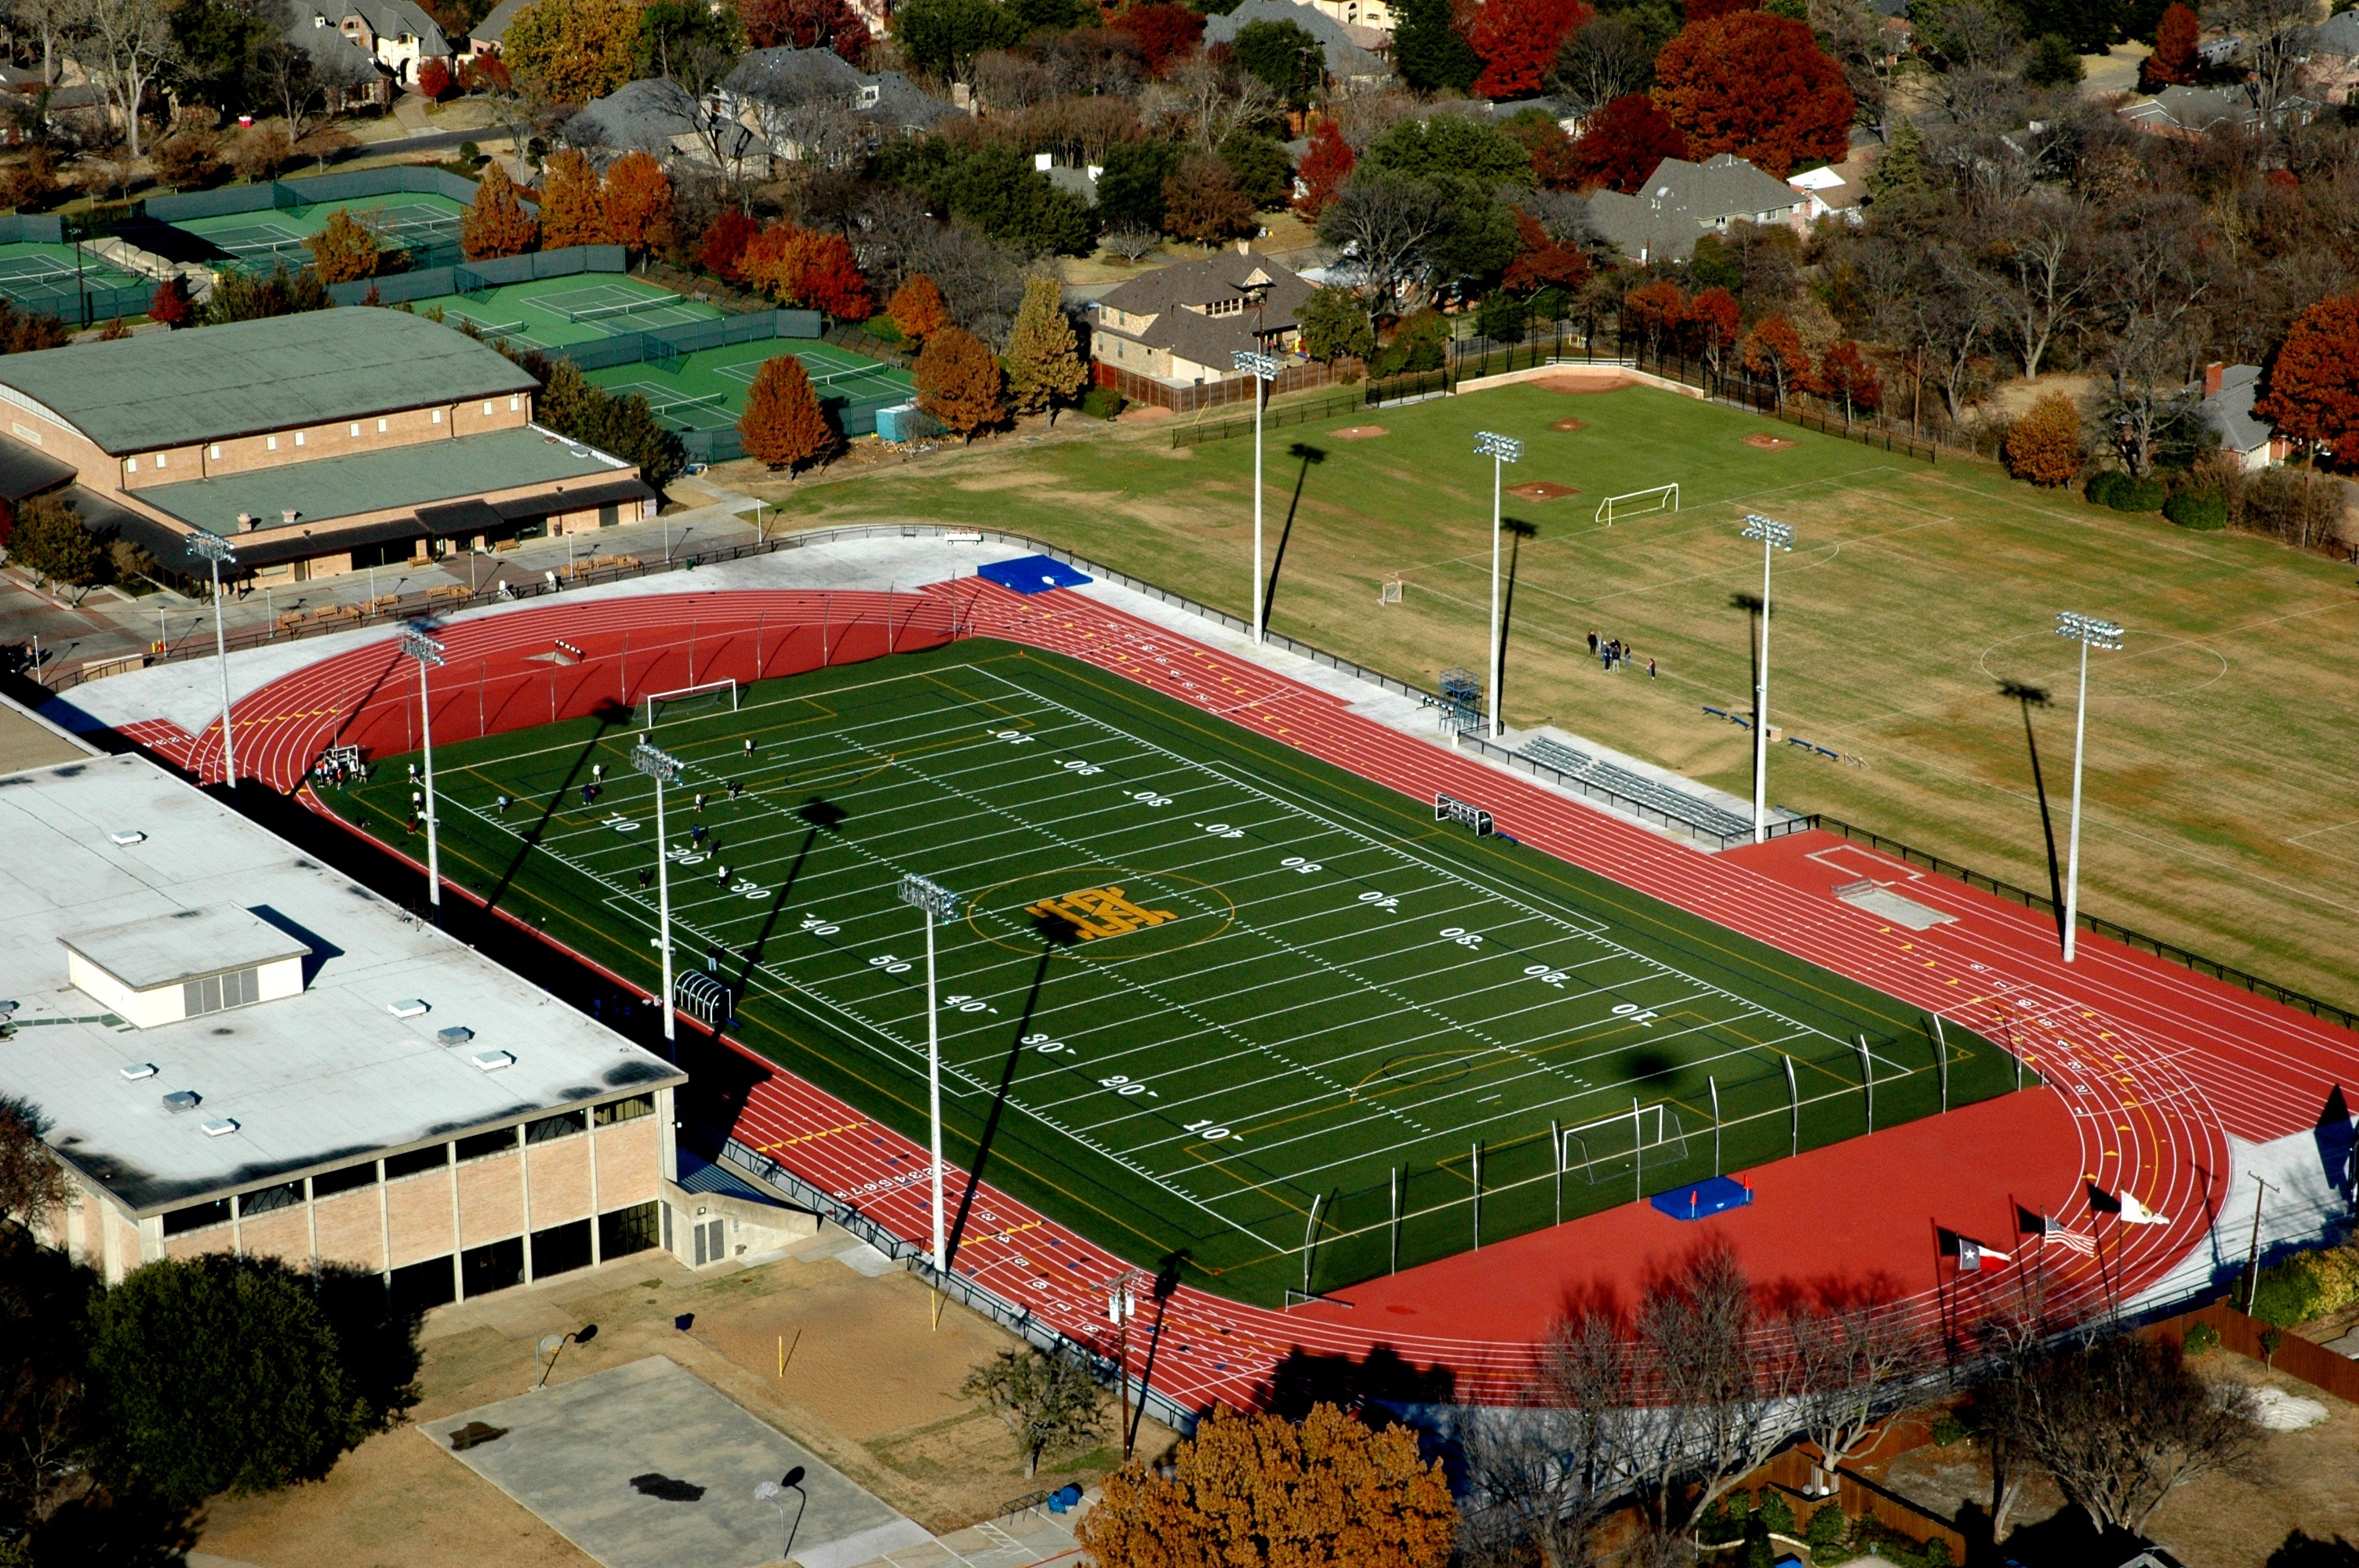 RLG St. Mark's Athletic Field